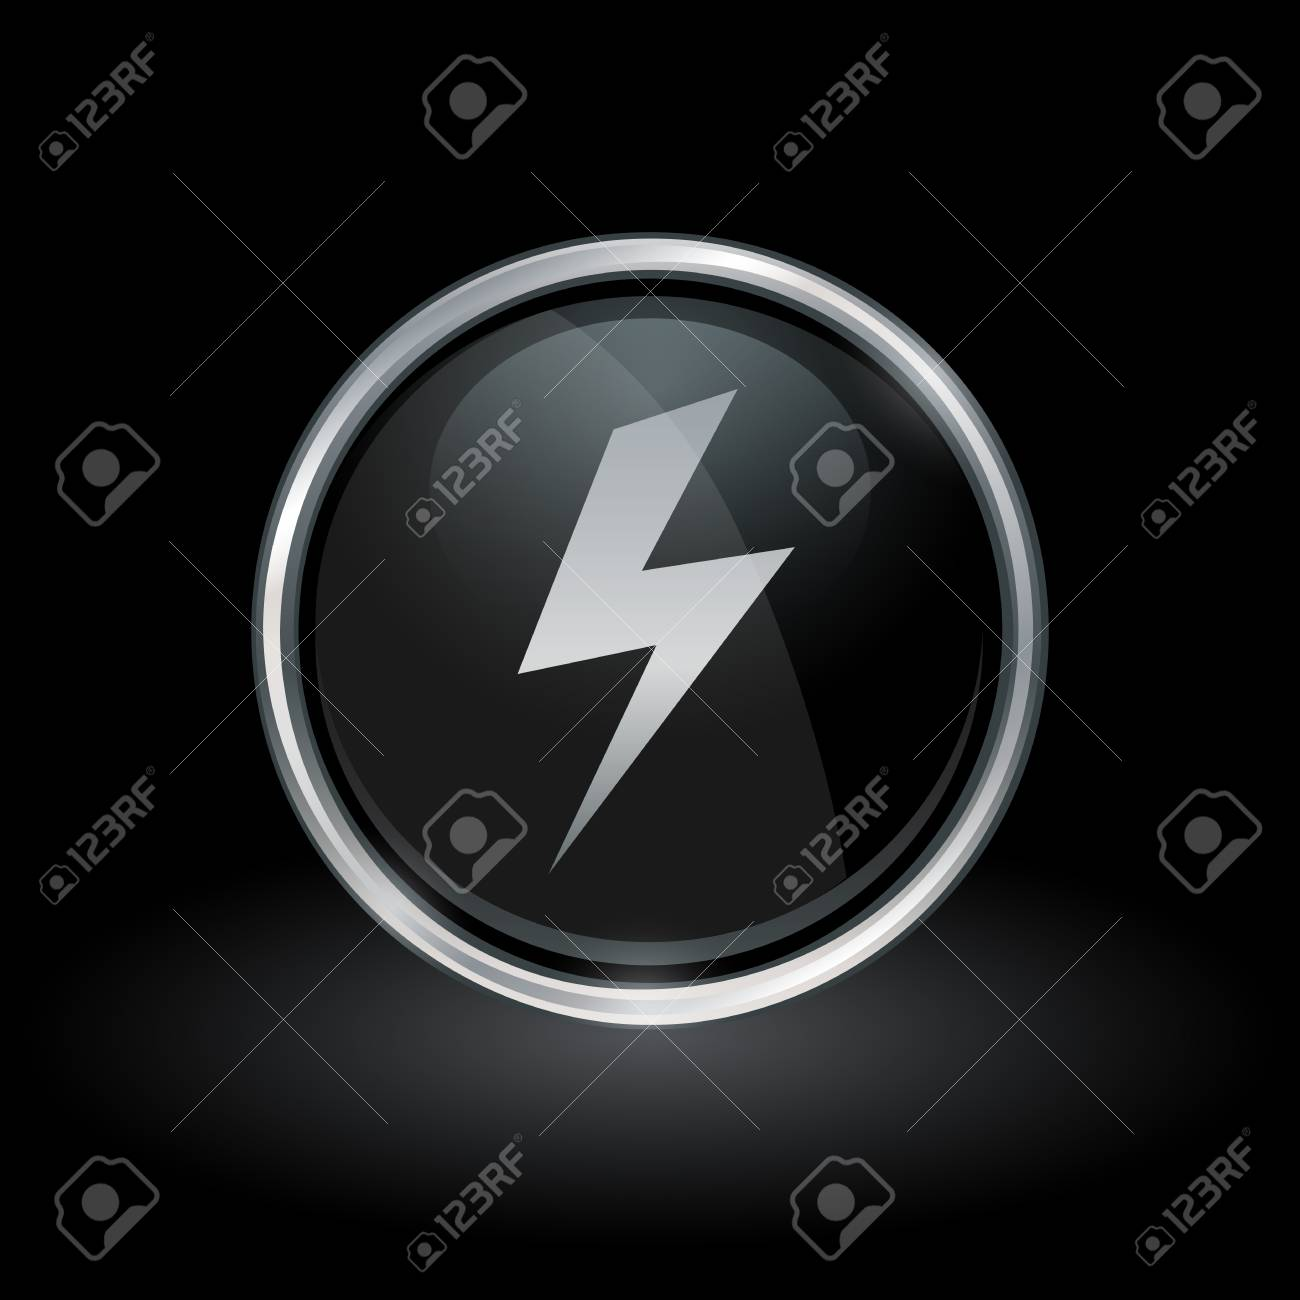 Electric Strike Symbol With Bolt Flash Icon Inside Round Chrome Royalty Free Cliparts Vectors And Stock Illustration Image 74062999